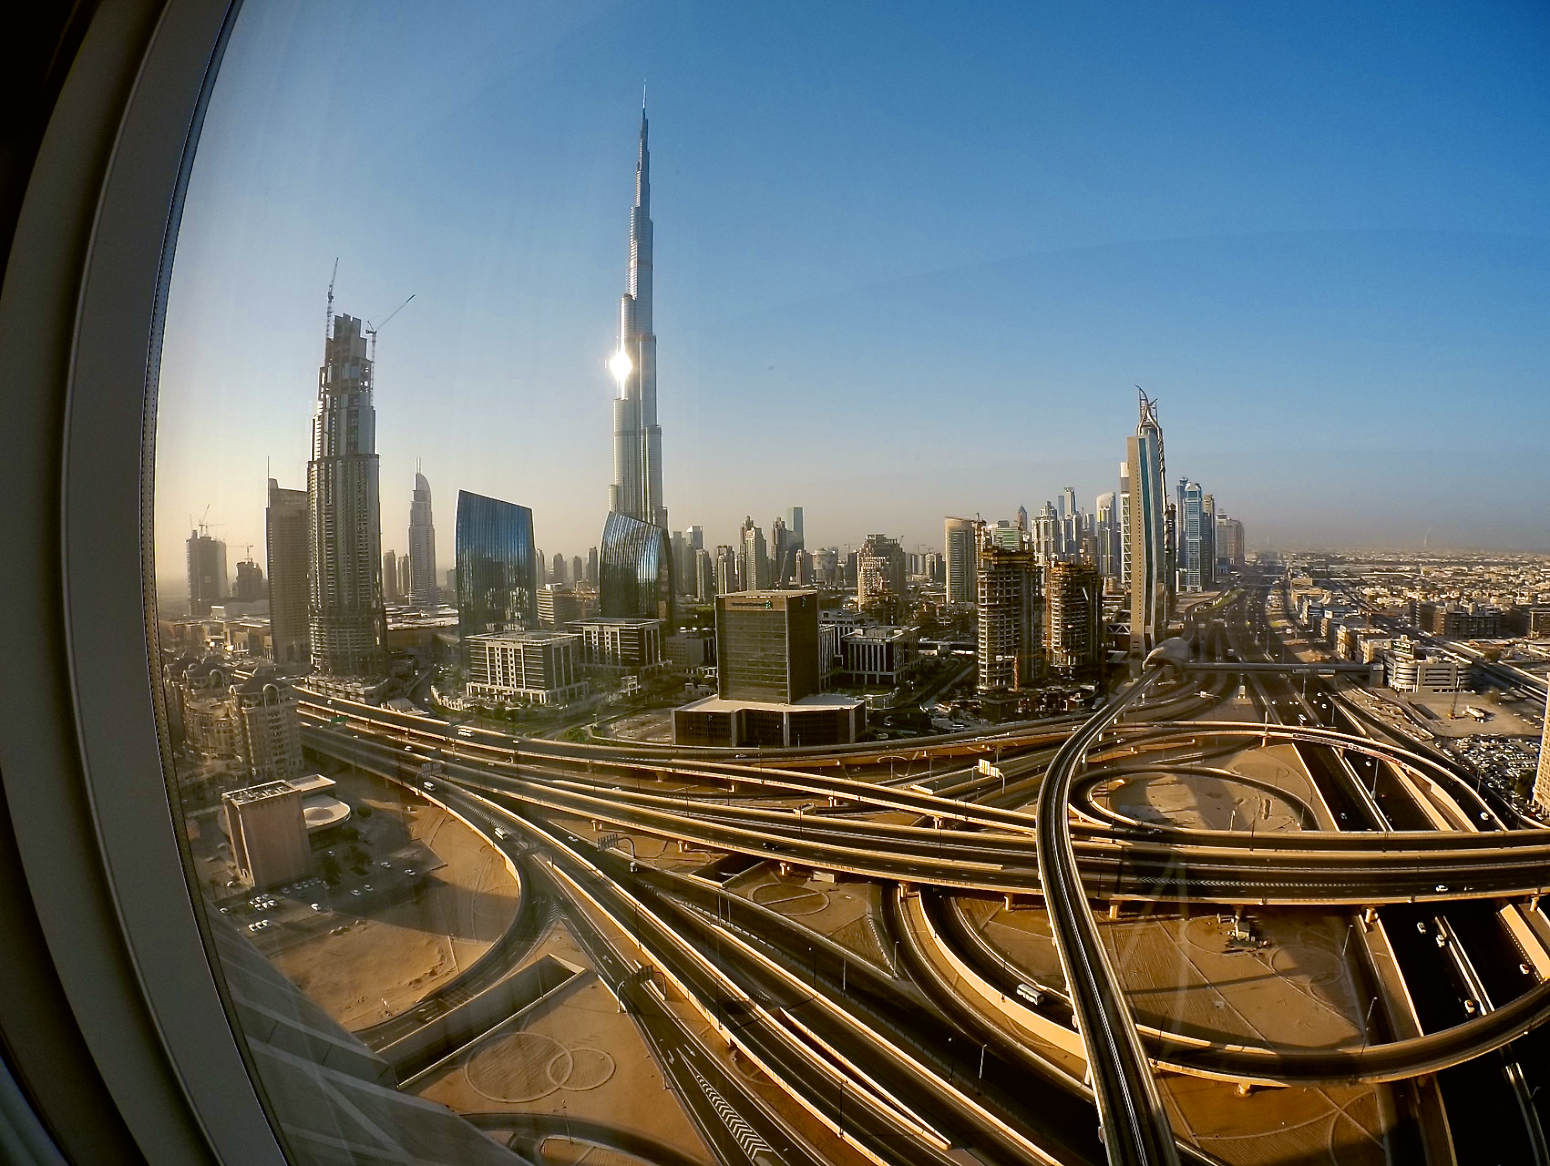 Weekend at Dusit Thani Hotel in Dubai   Weekend ideas for the UAE